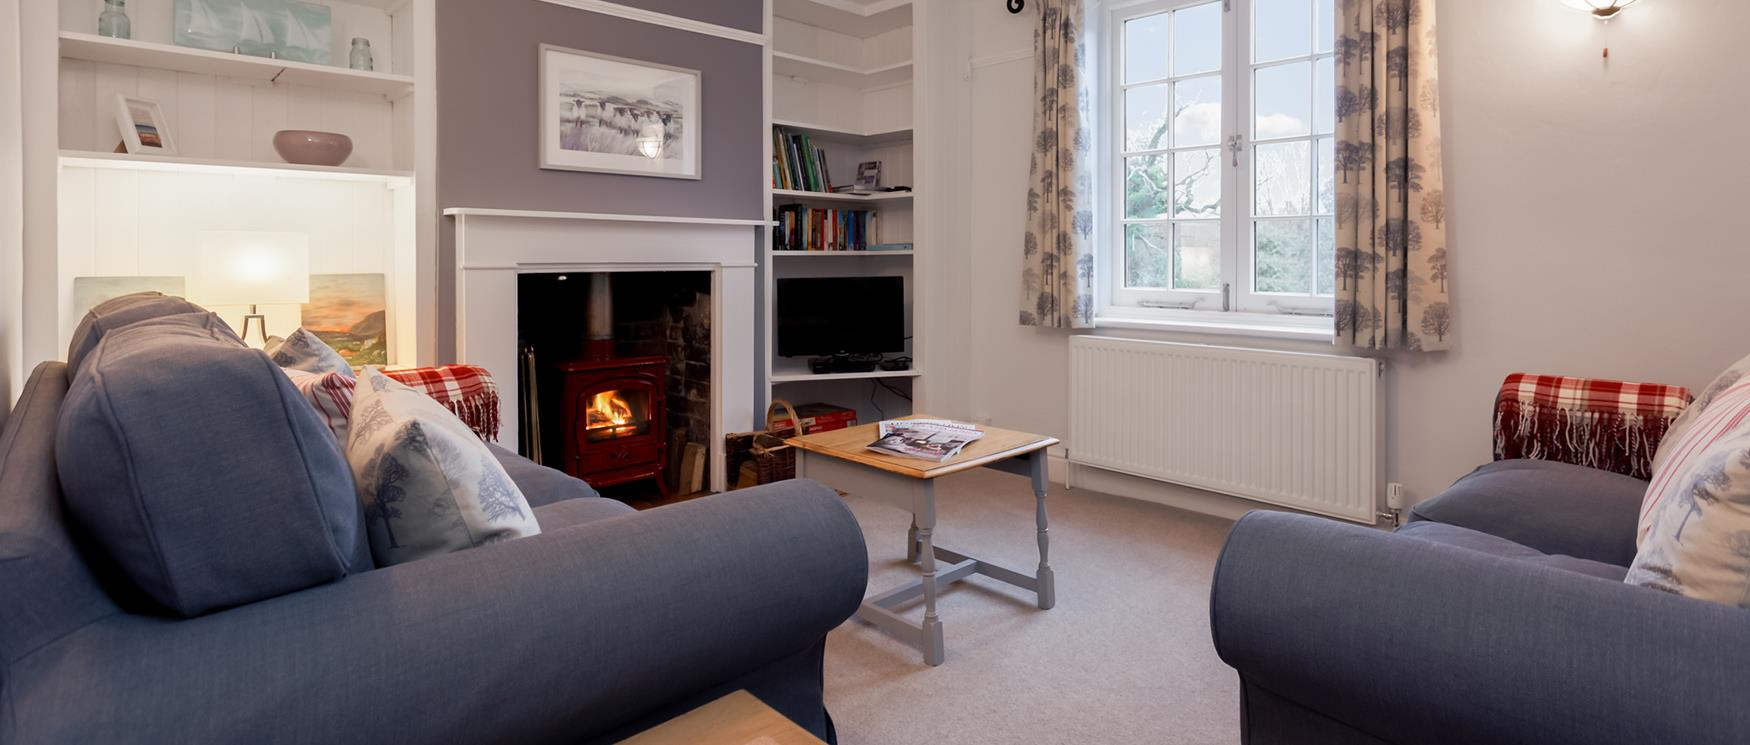 Cosy Holiday Cottage in Hampshire